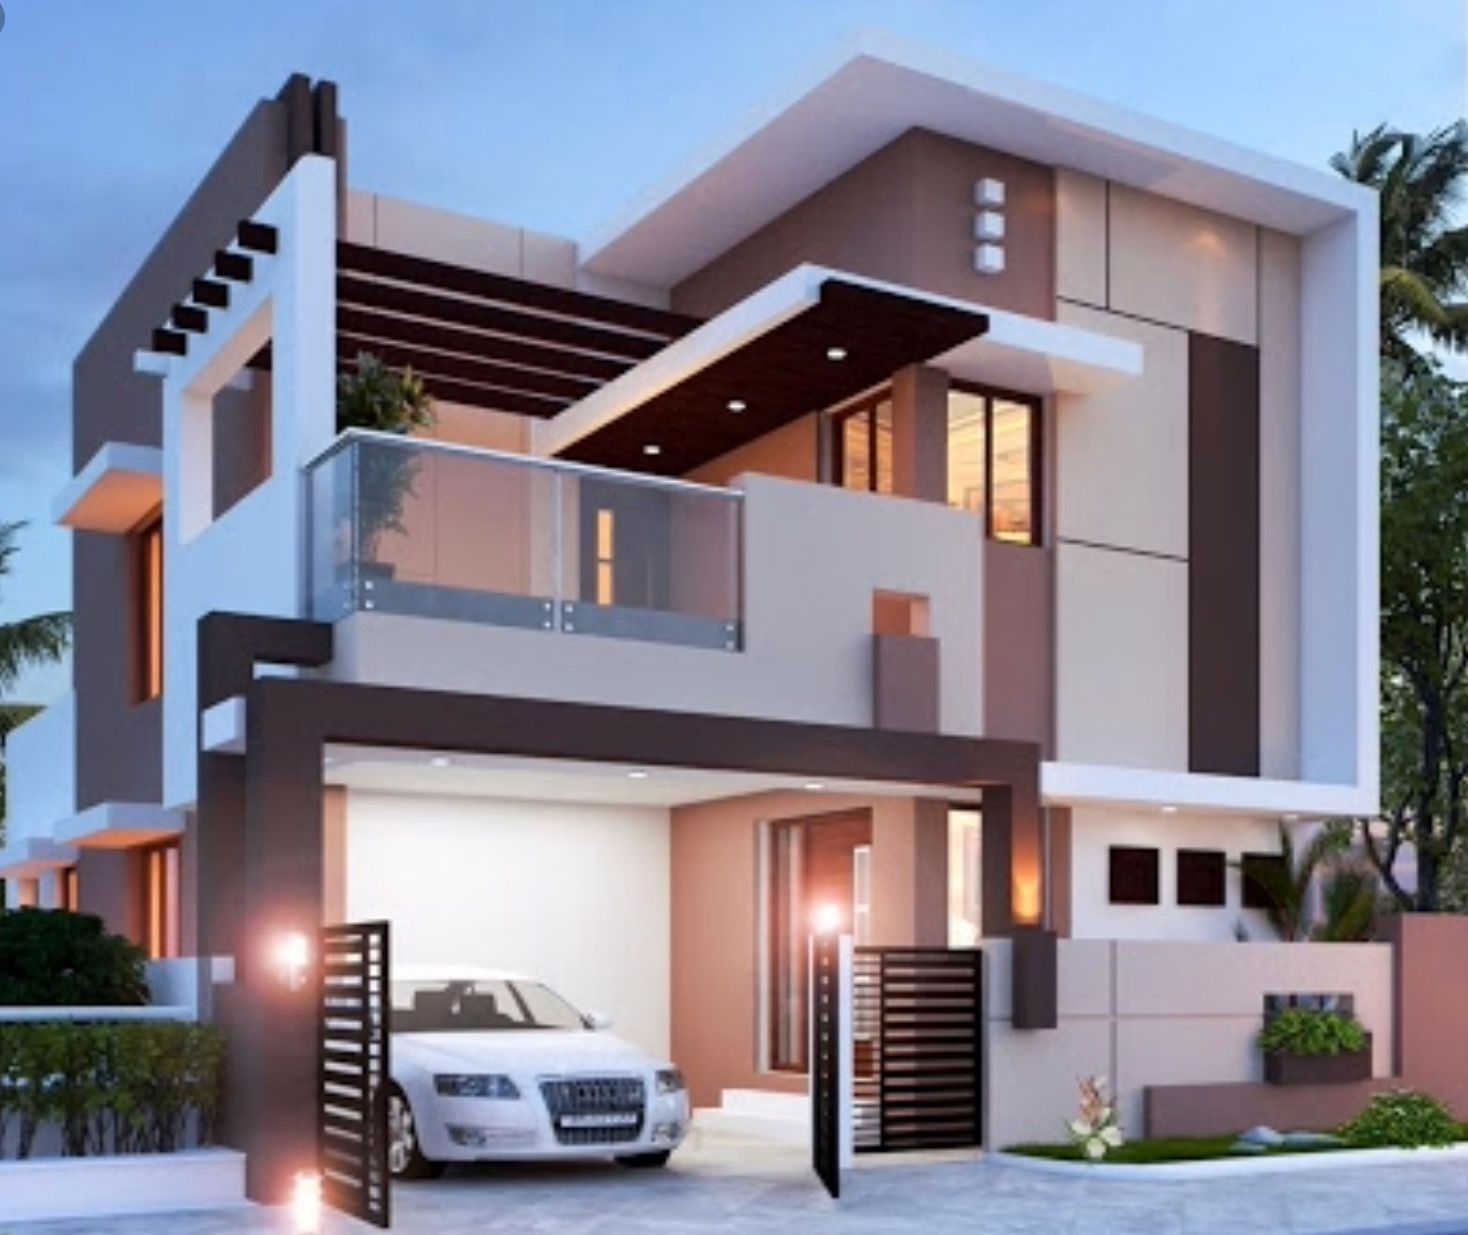 21 The Most Unique Modern Home Design In The World New Modern House Plans Duplex House Design Bungalow House Design